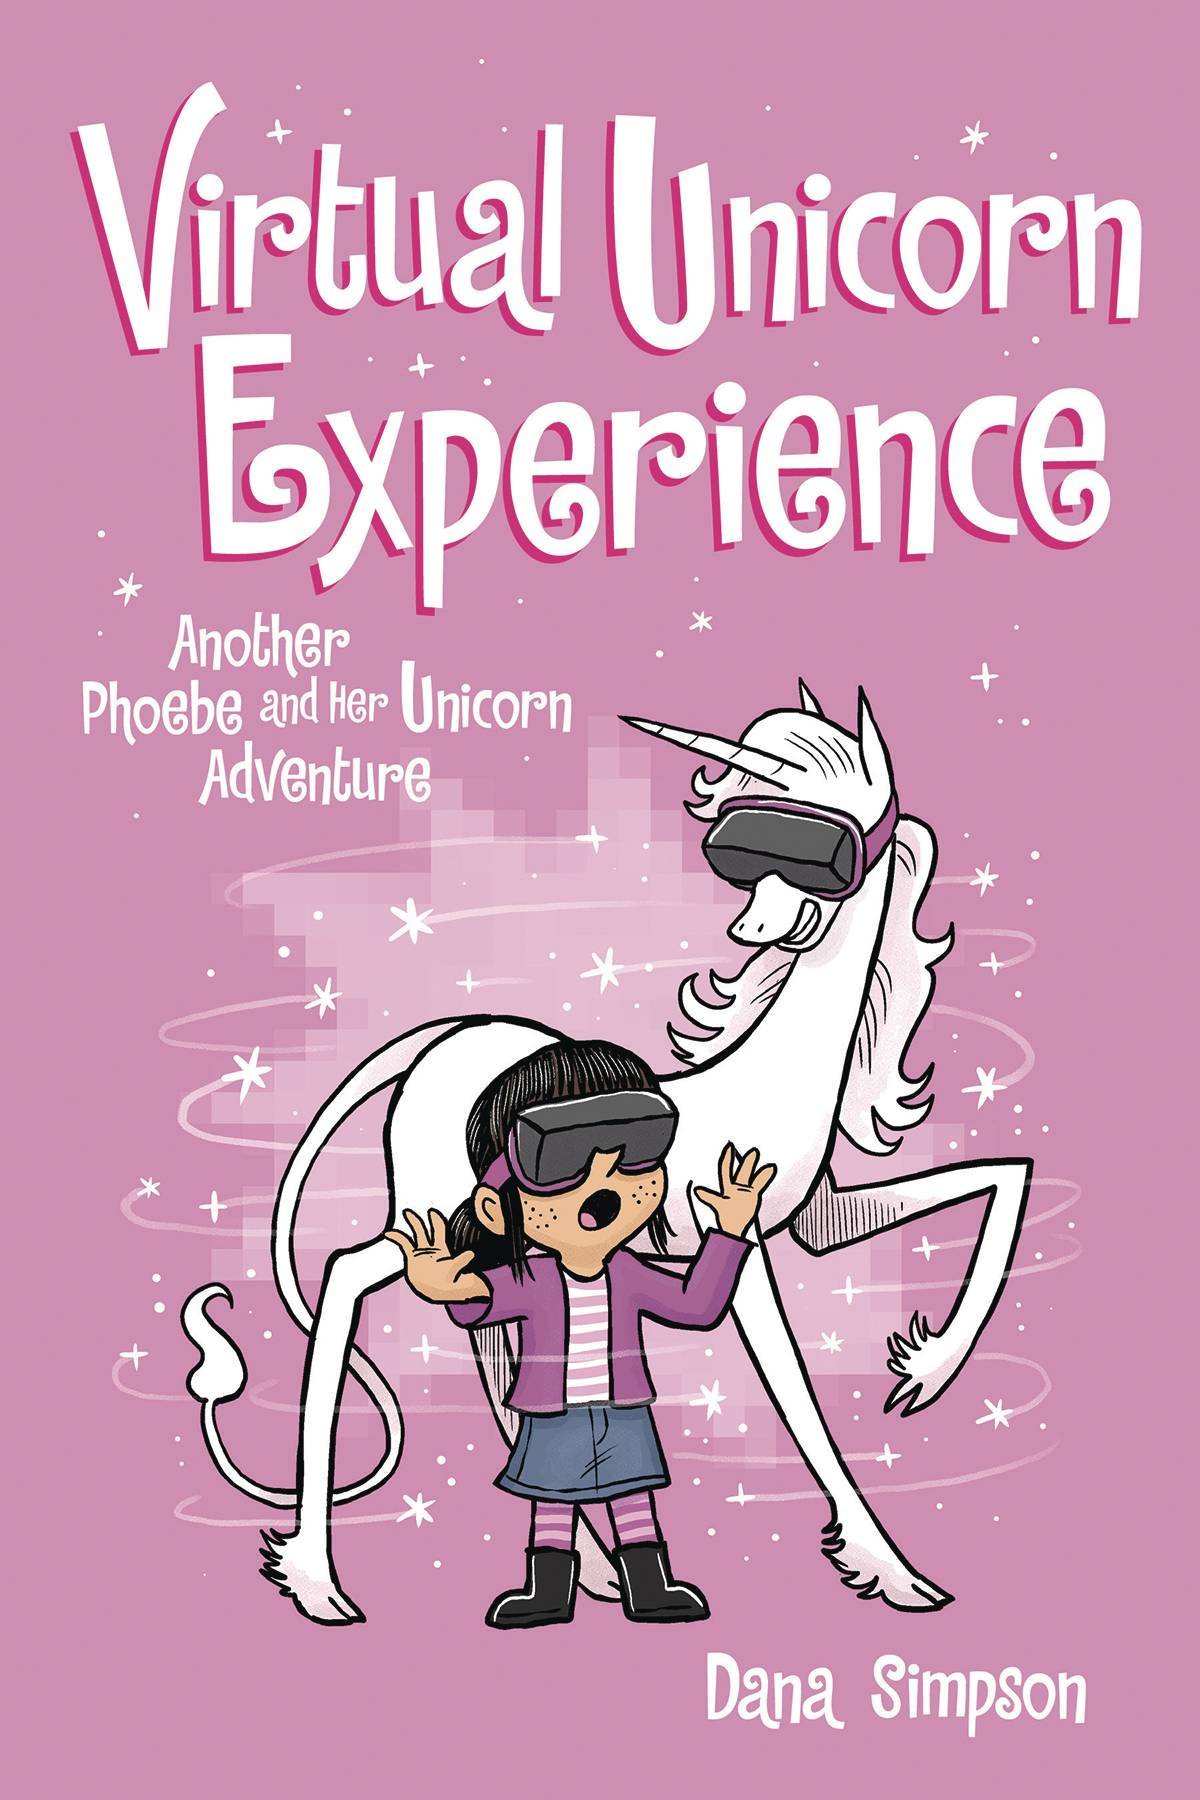 PHOEBE & HER UNICORN GN VOL 12 VIRTUAL UNICORN EXPERIENCE (C